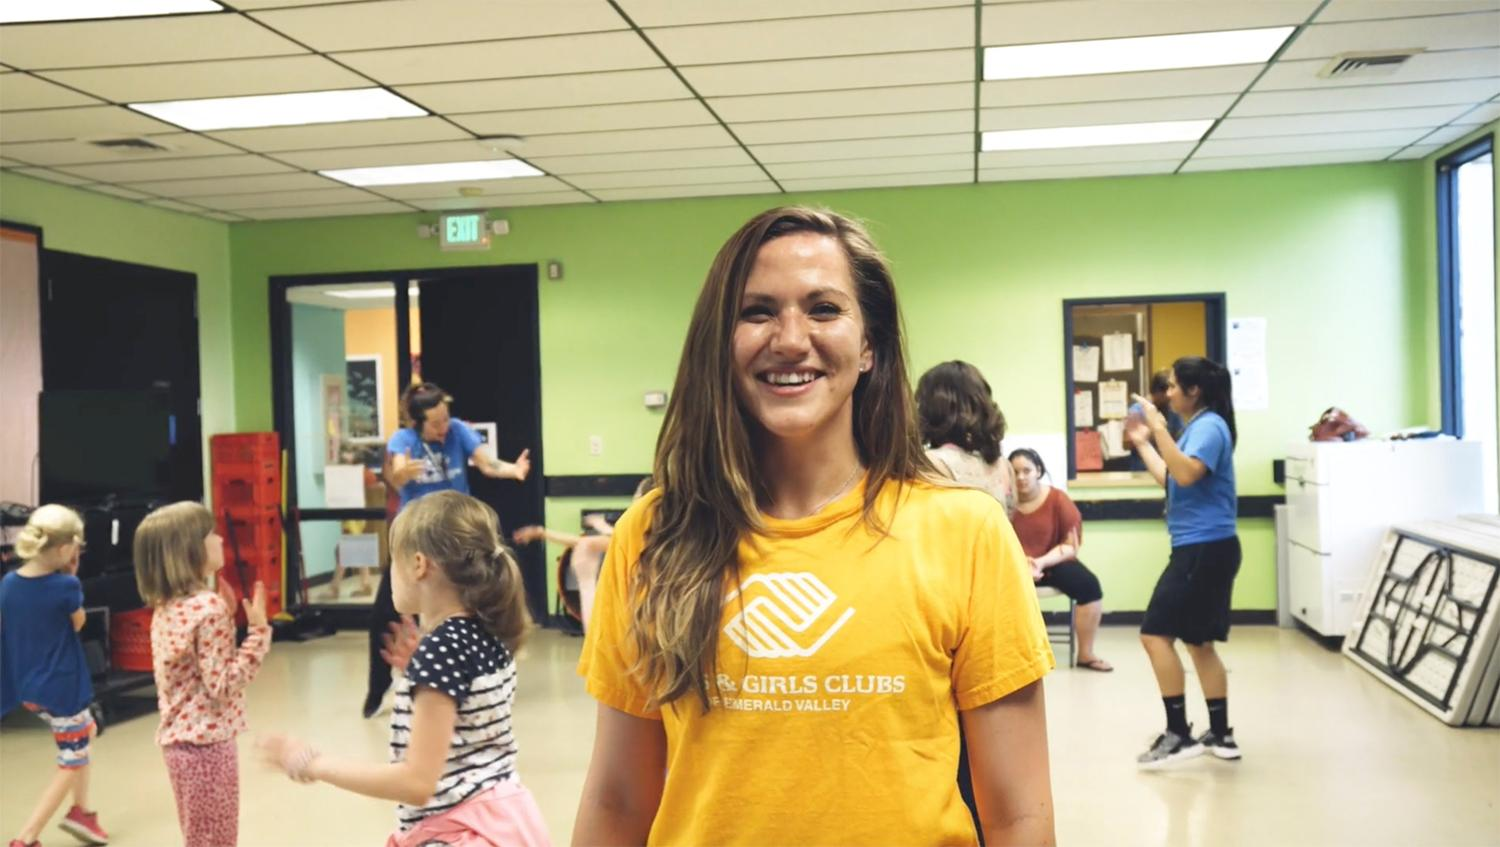 Alyssa volunteers teaching dance with the Boys & Girls Club.